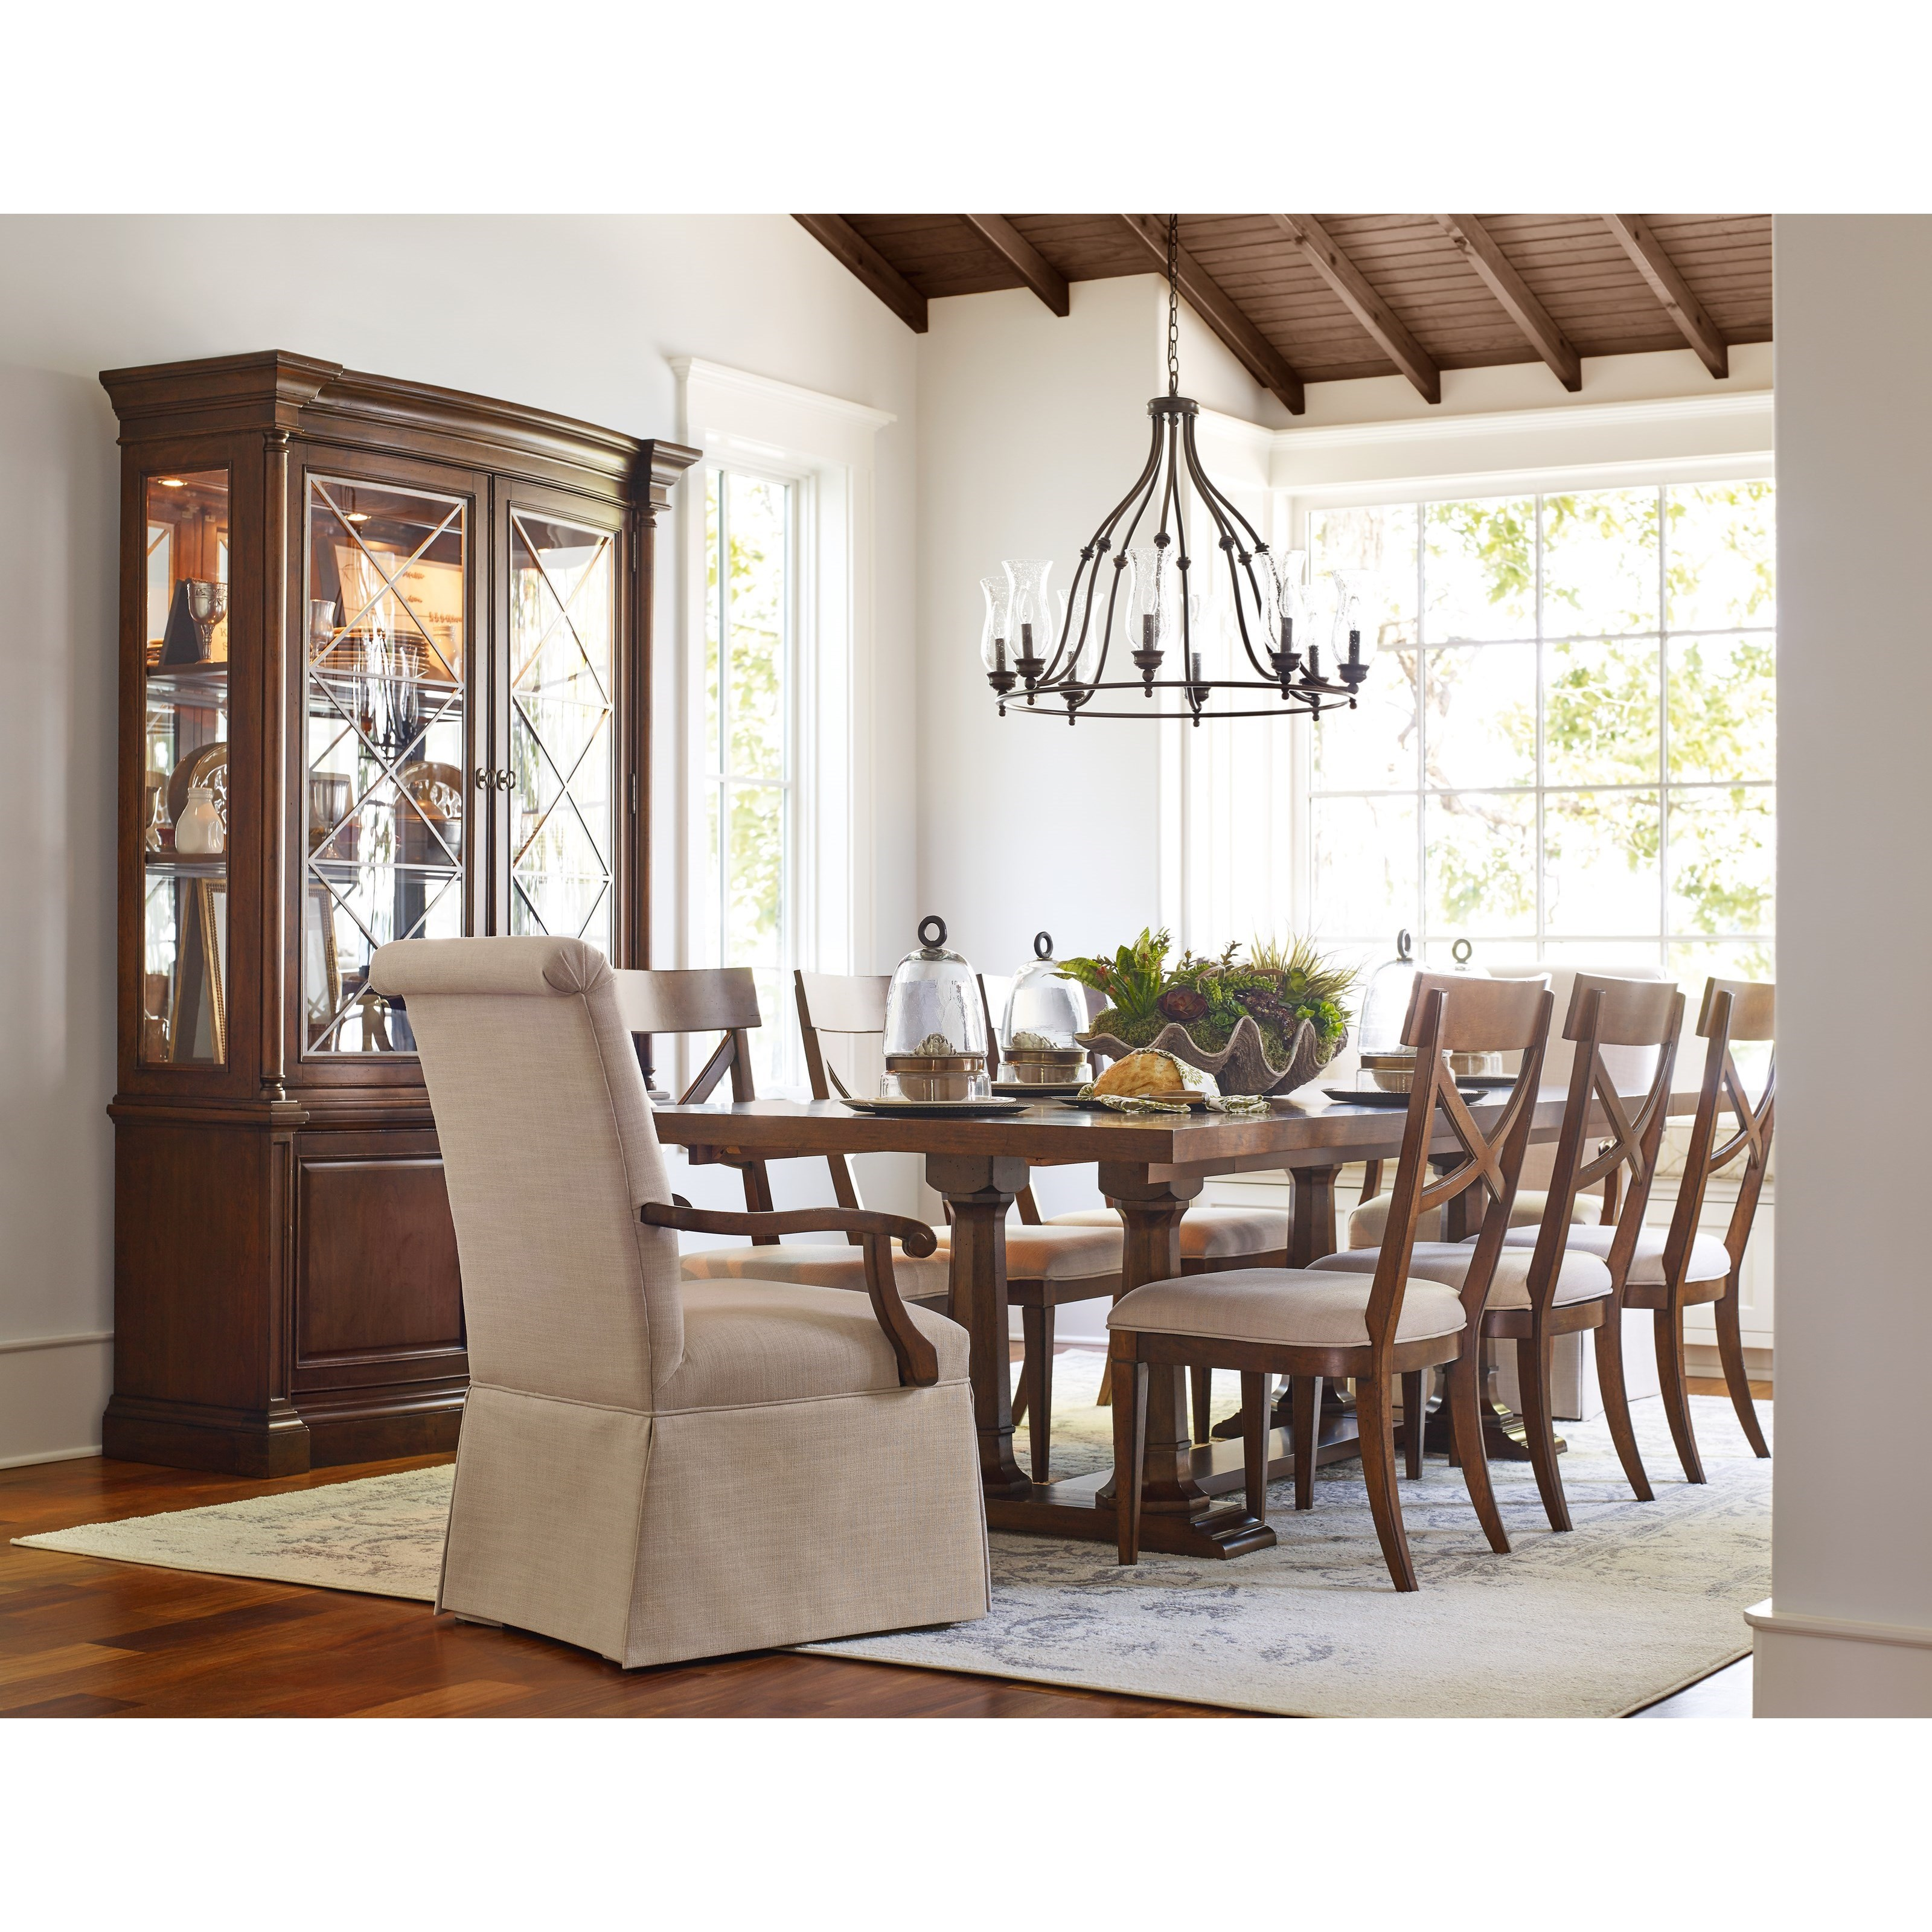 Rachael Ray Home by Legacy Classic Upstate Formal Dining Room Group - Item Number: 6040 Formal Dining Room Group 2